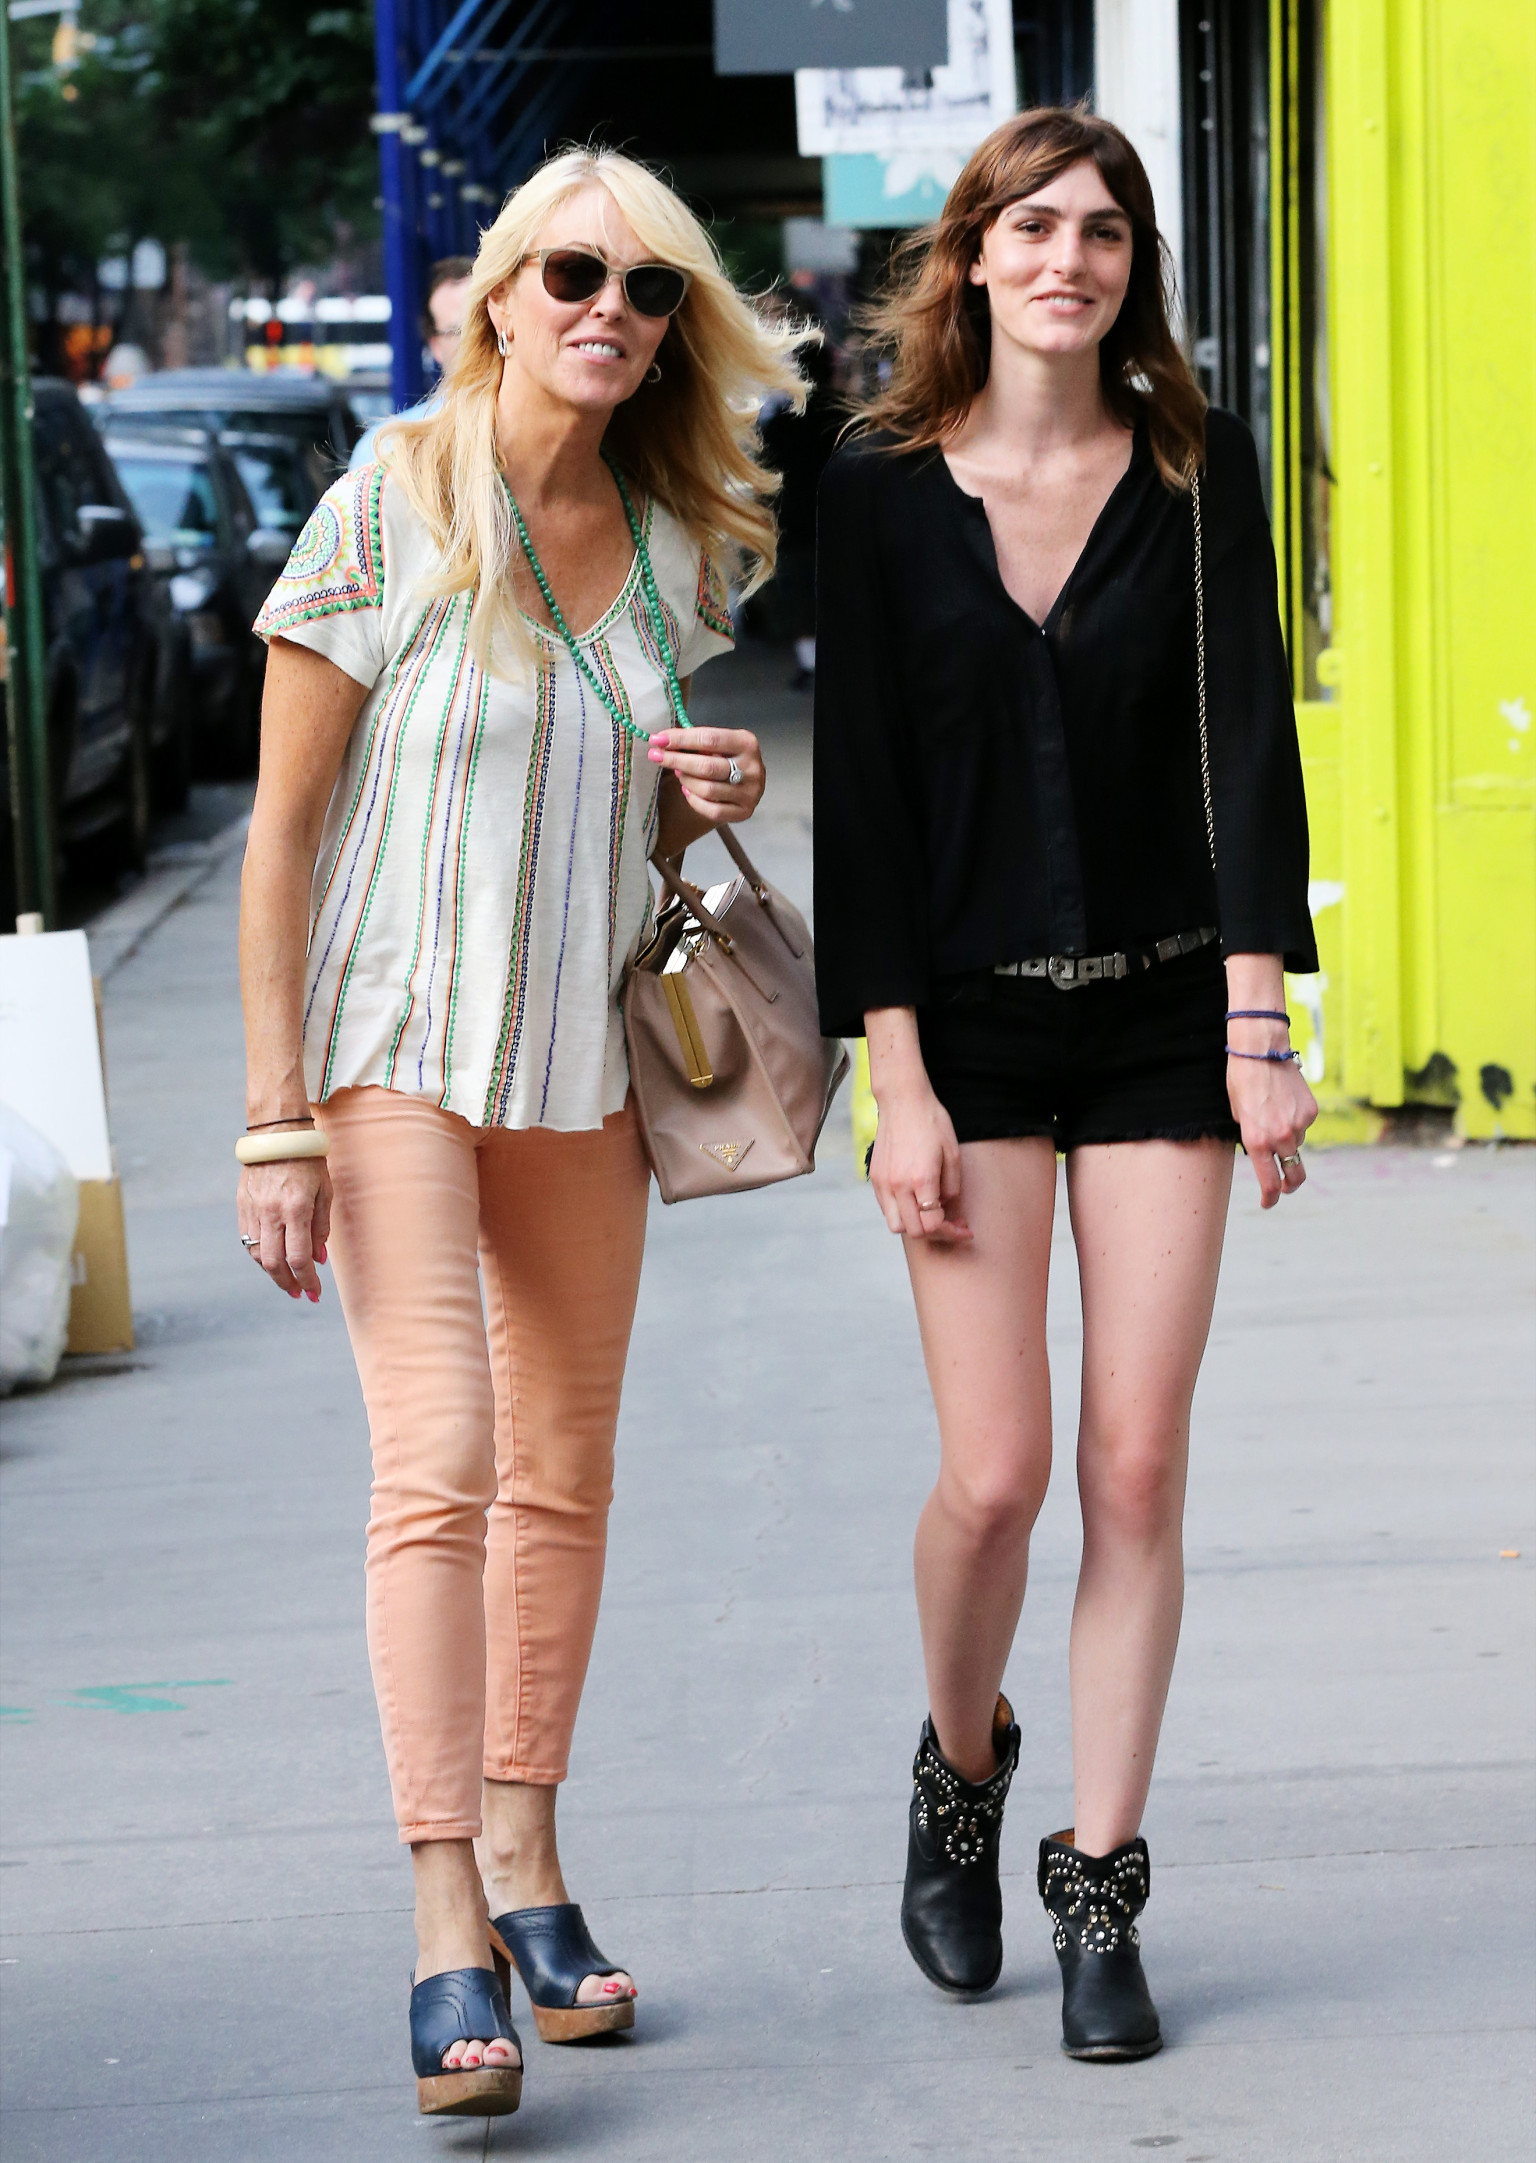 Ali Lohan's Short Shorts: Model Spotted In SoHo With Mom (PHOTOS) | HuffPost